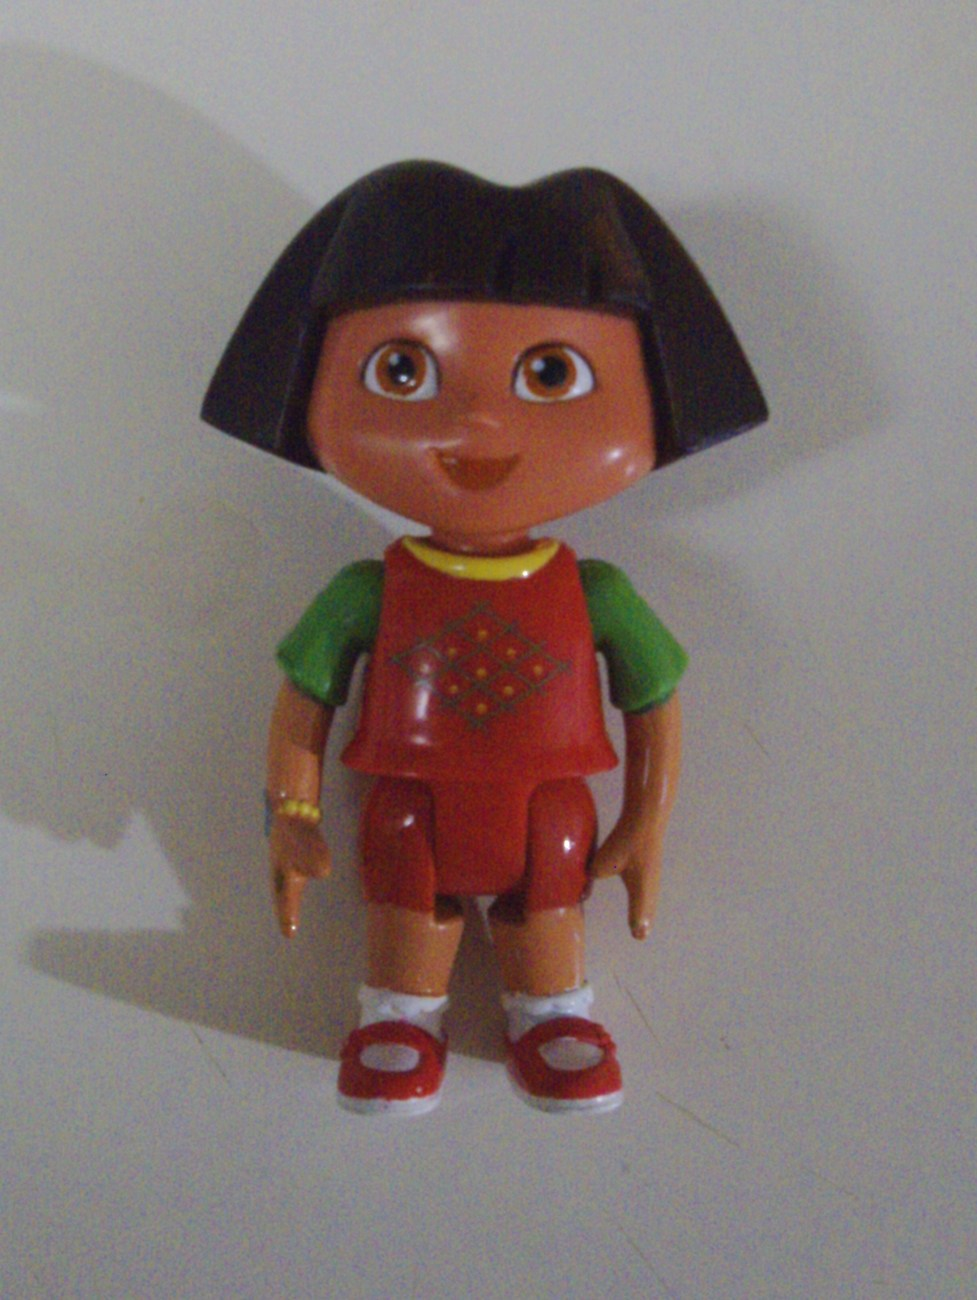 Nickelodeon Dora the Explorer Christmas Party figure